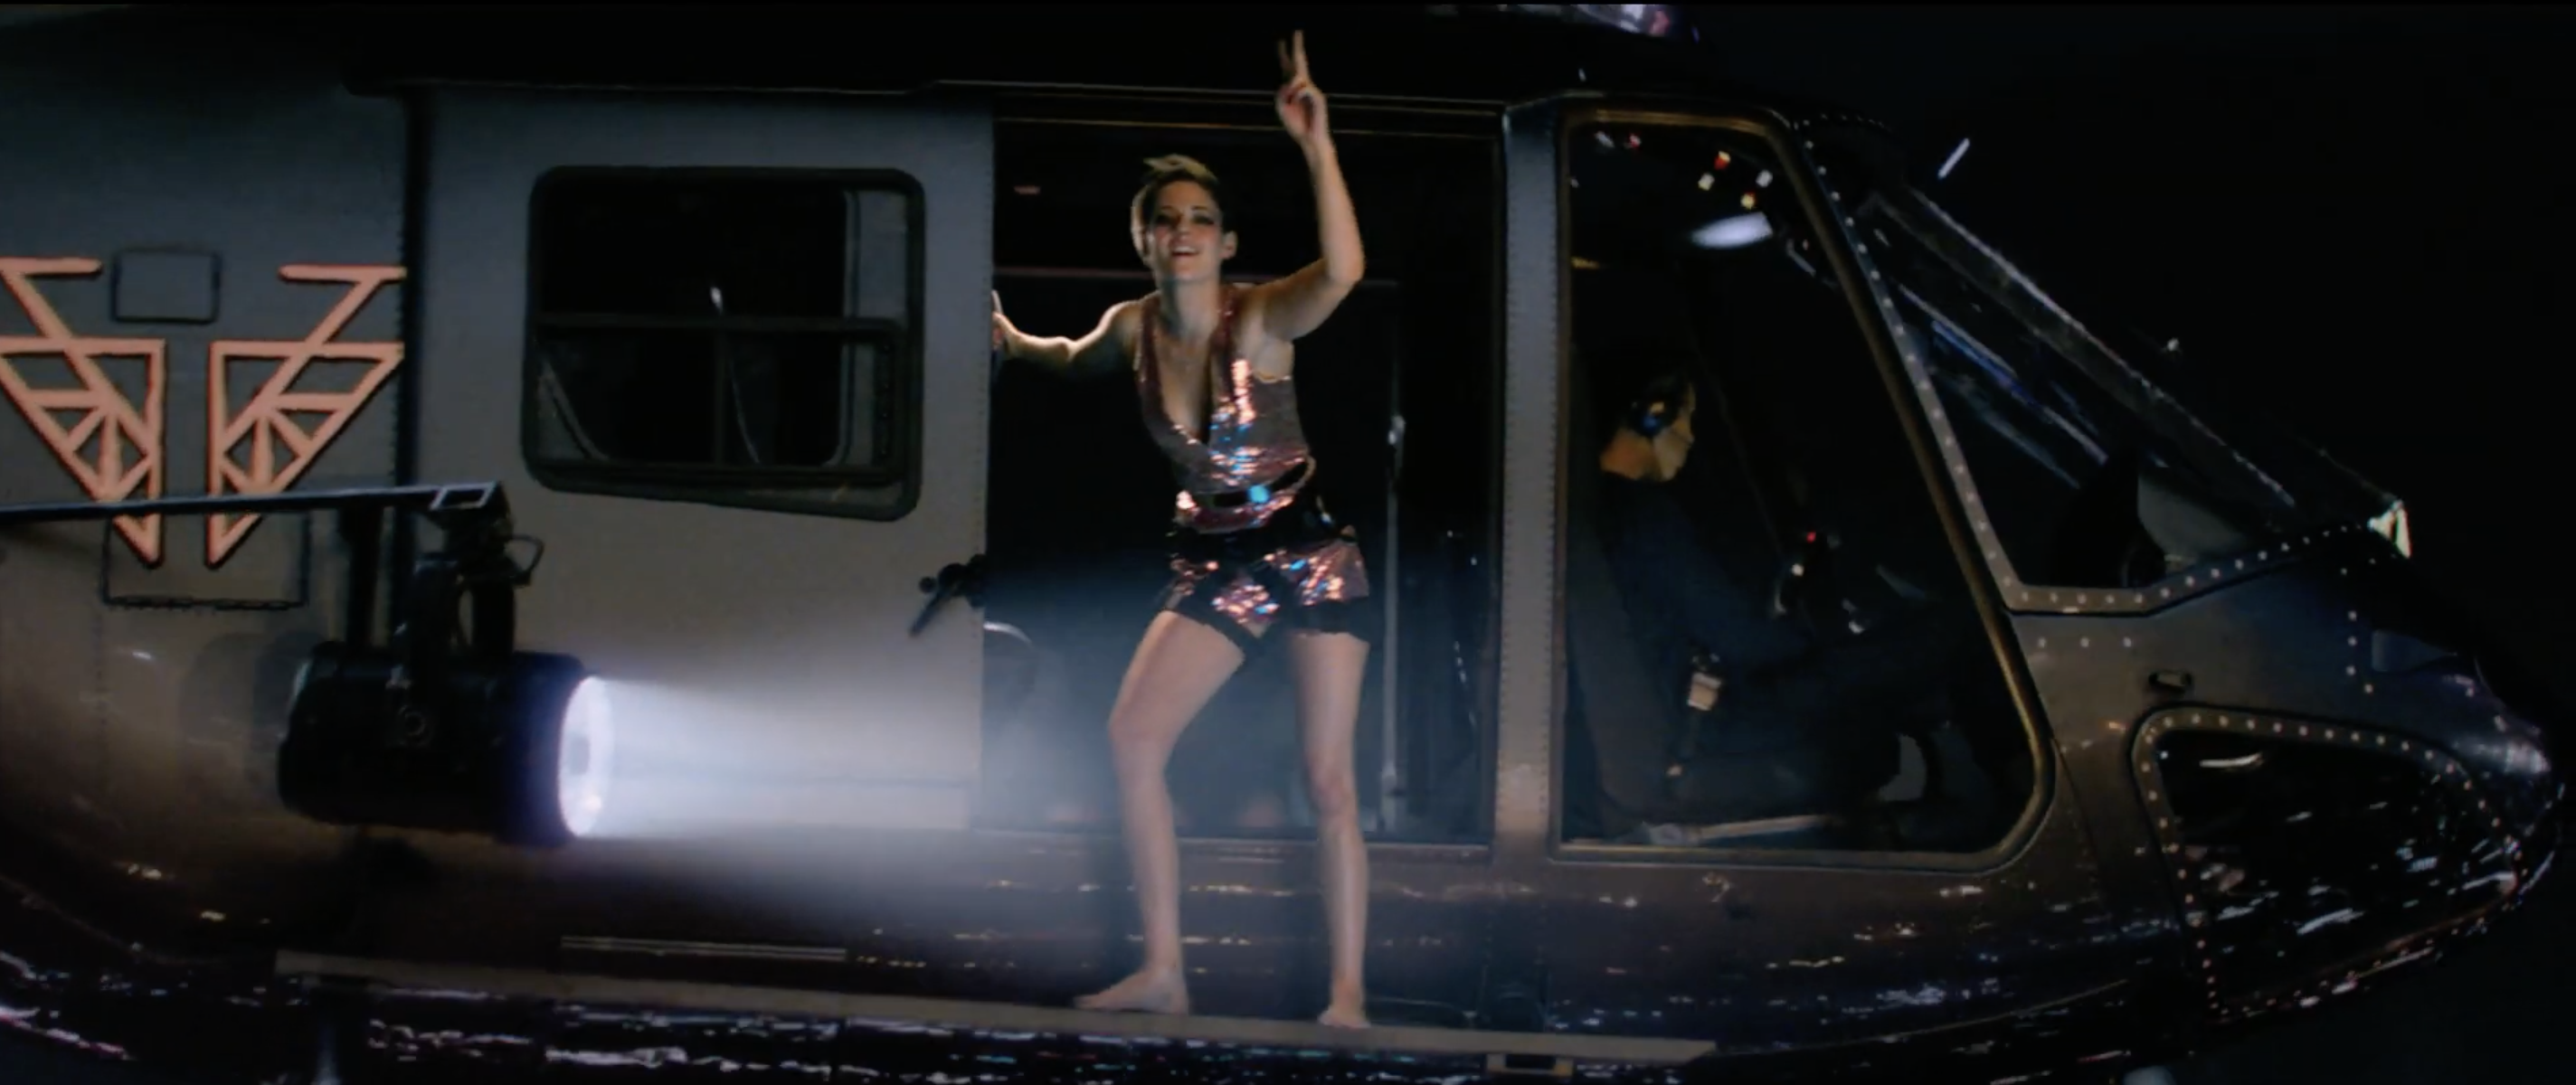 Kristen Stewart looking fierce in a sparkly pink dress, while grasping onto a helicopter